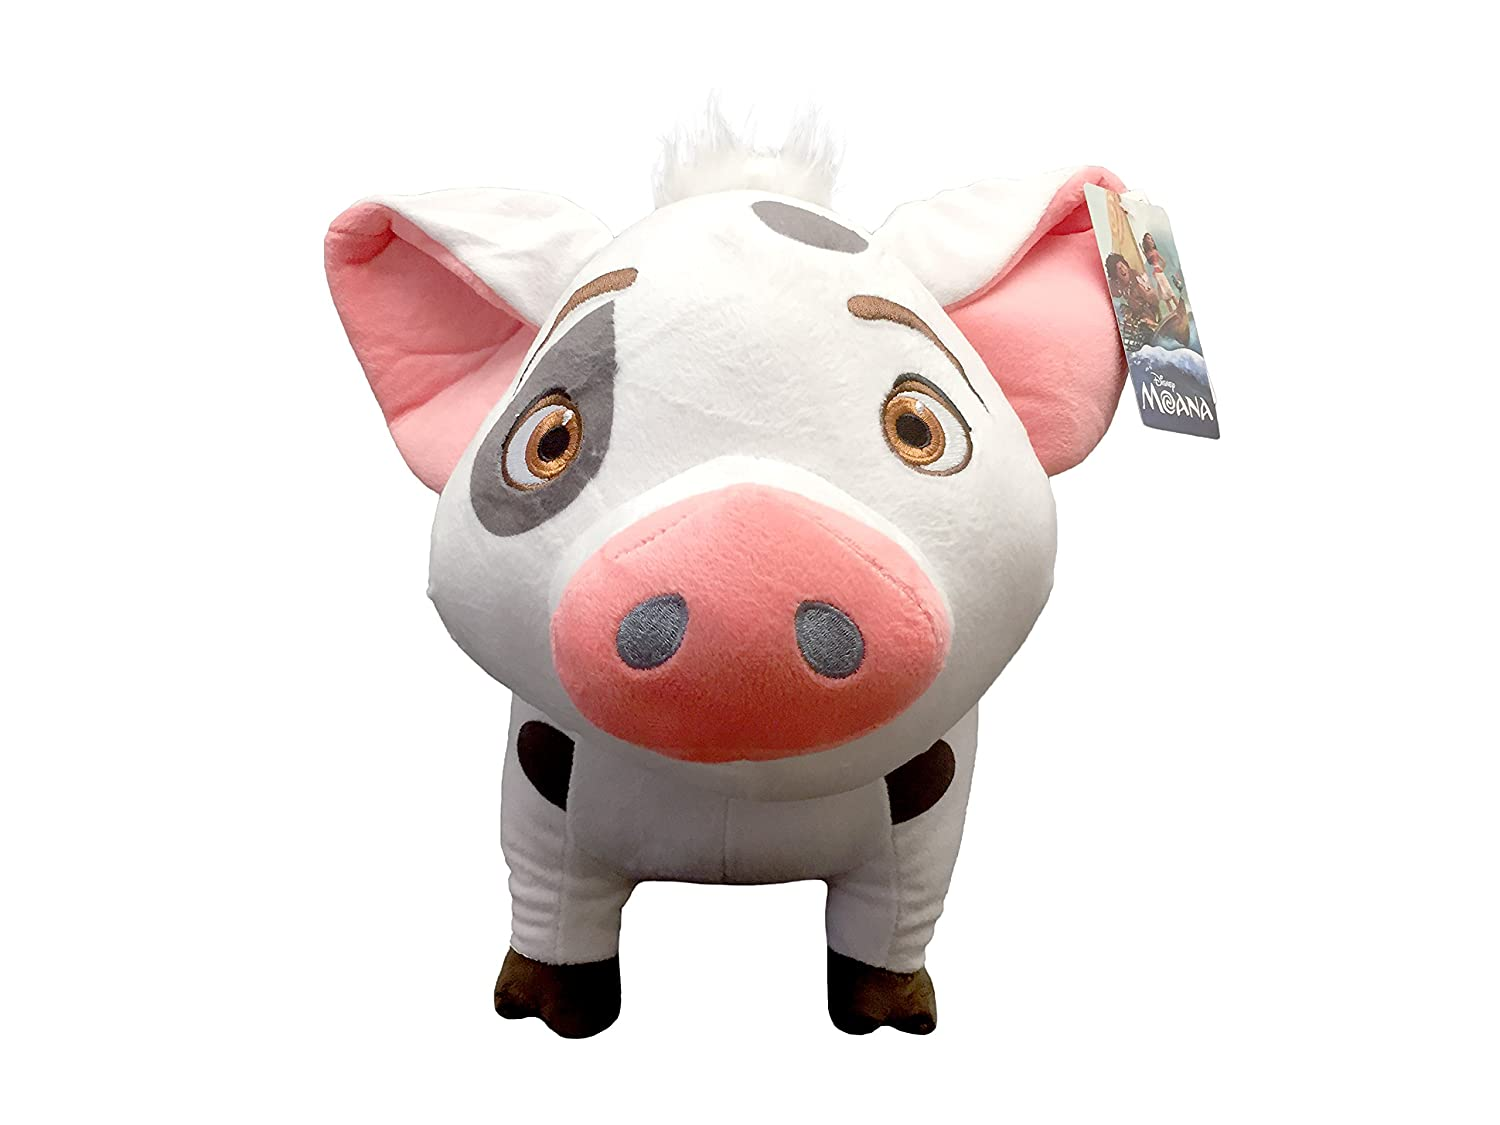 amazon com jay franco moana plush stuffed pua pig pillow buddy kids